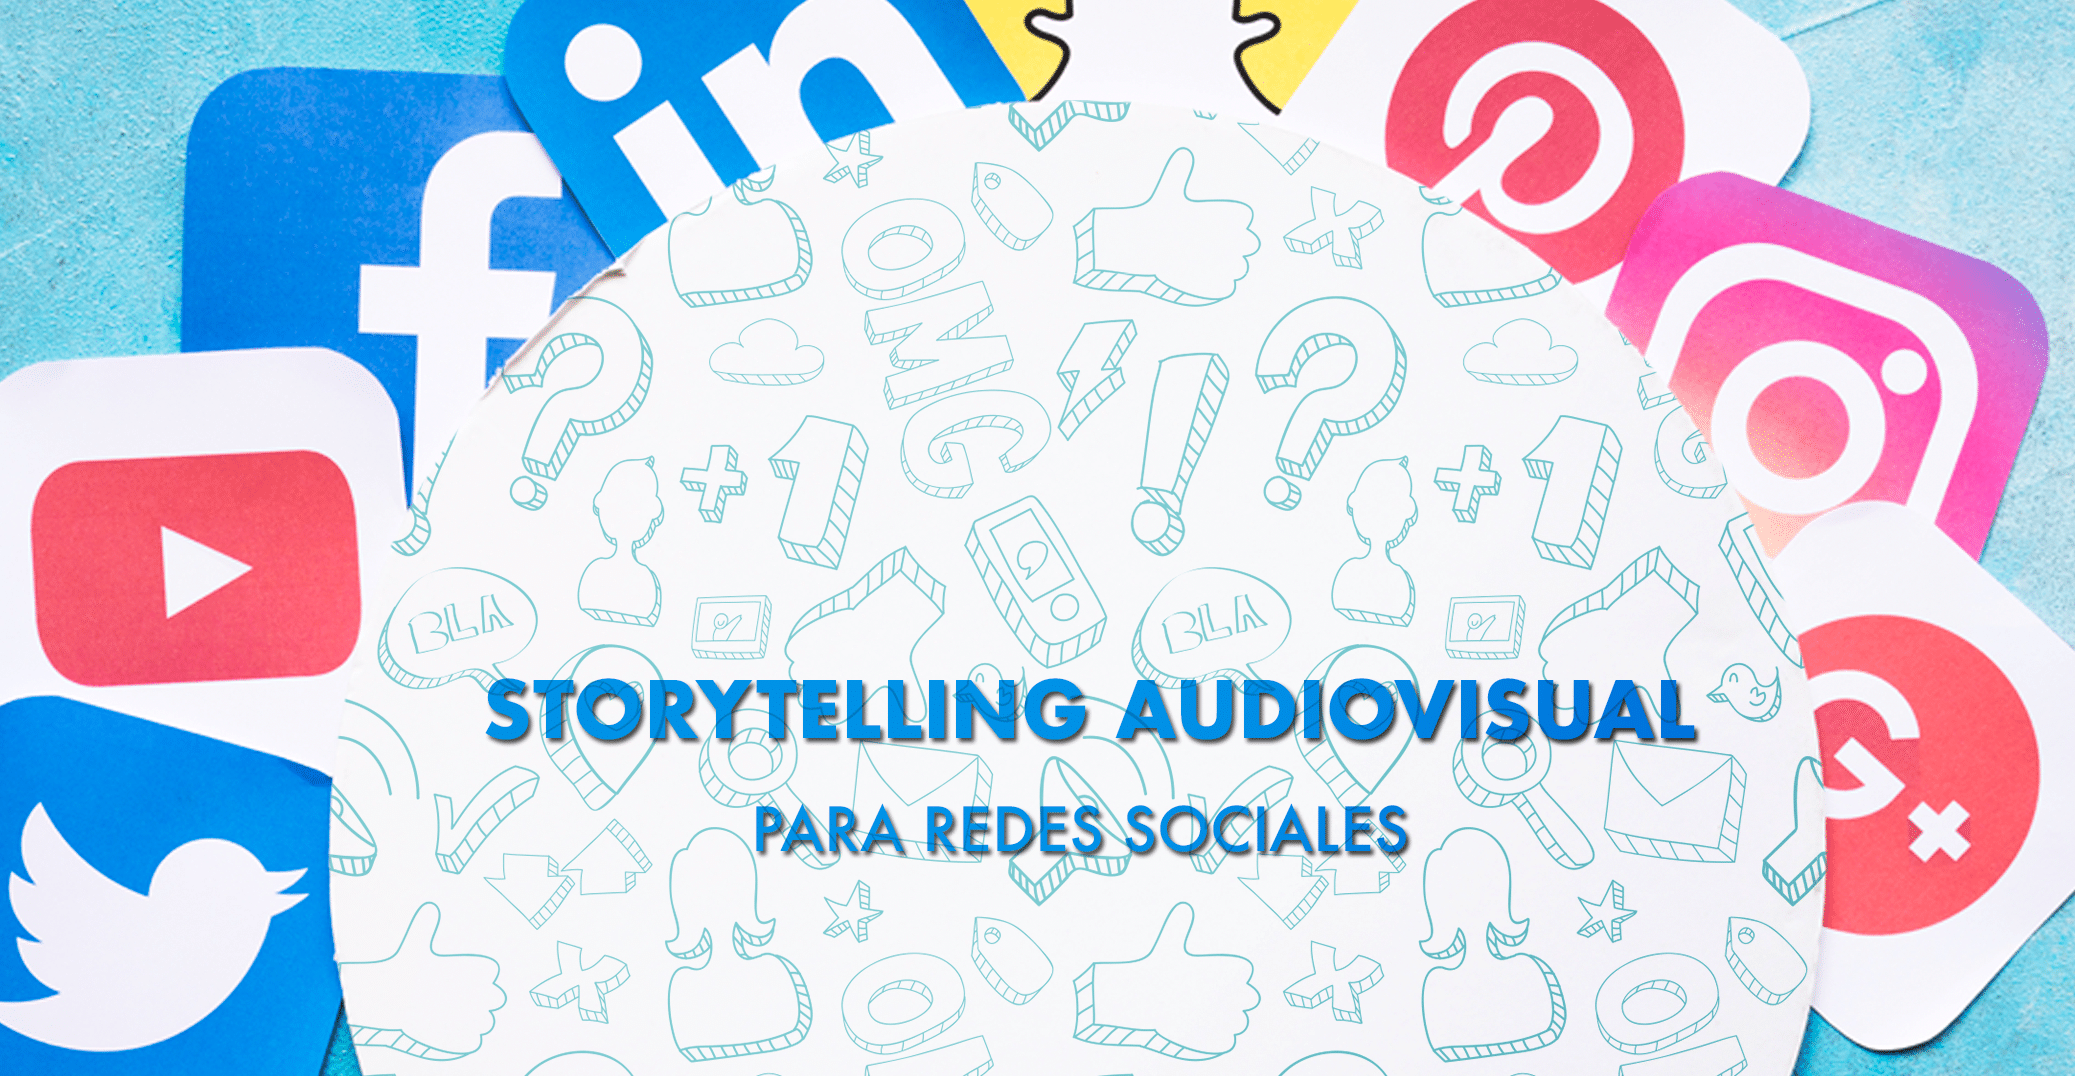 Storytelling audiovisual redes sociales